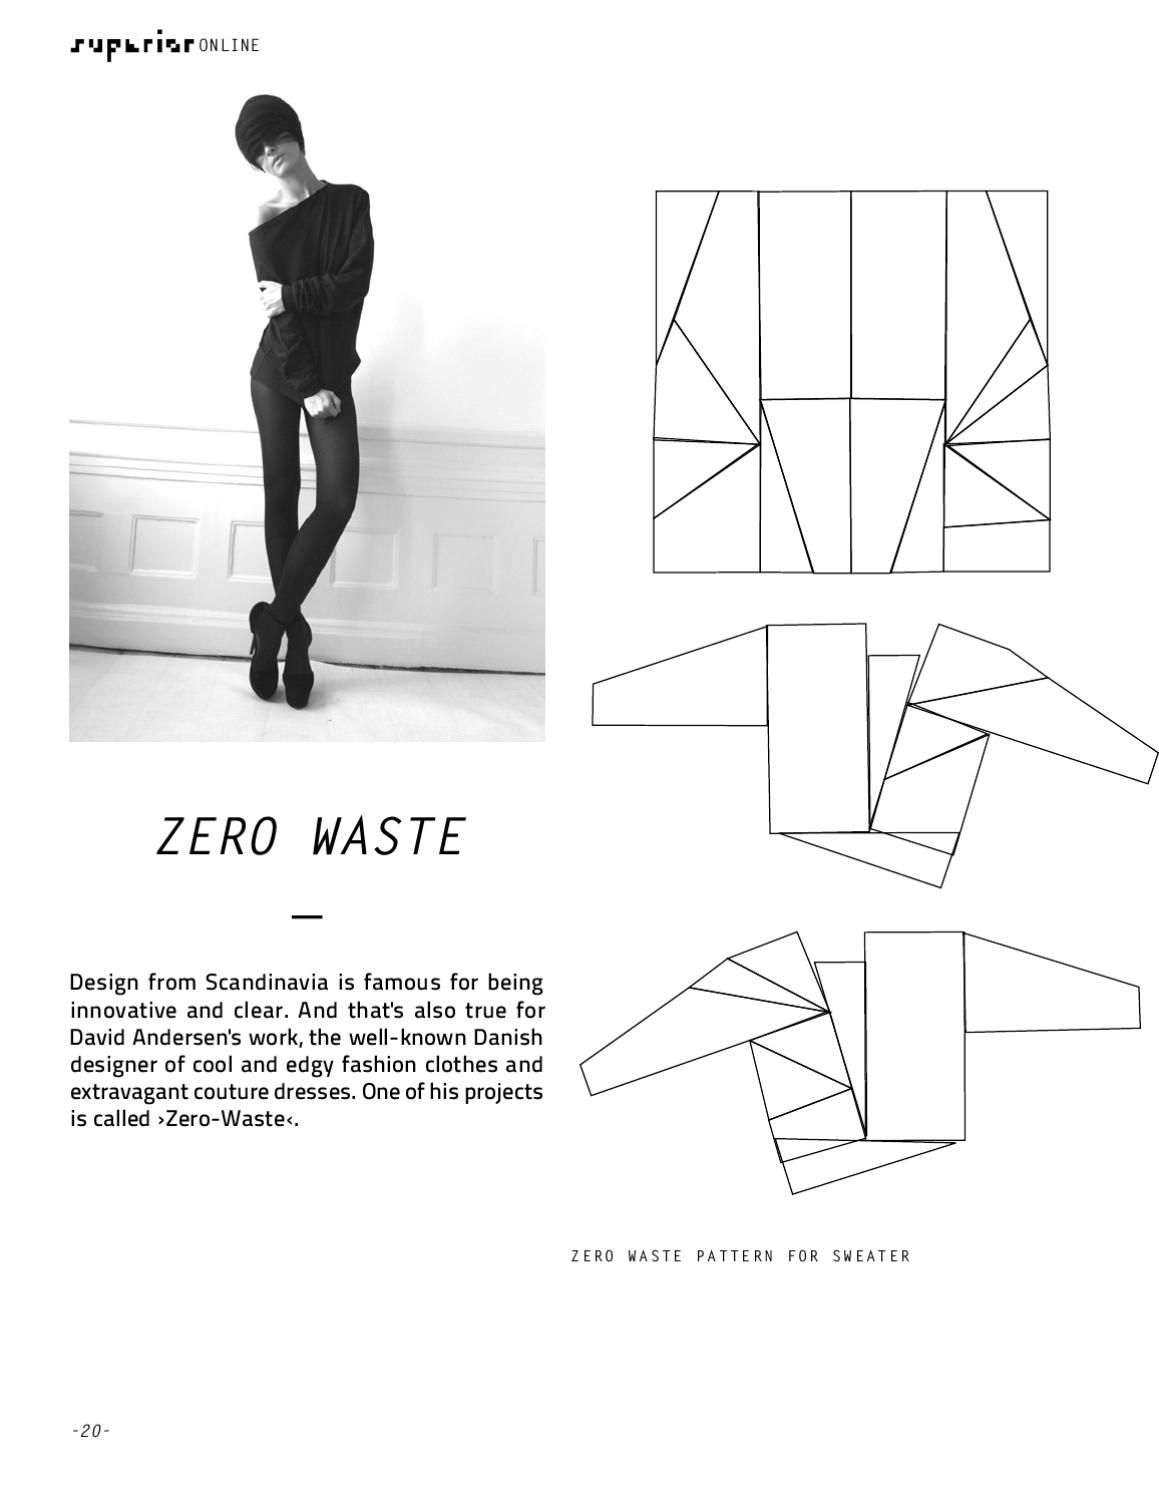 SUPERIOR ONLINE July 2012 | Sewing Zero Waste | Pinterest | Zero ...